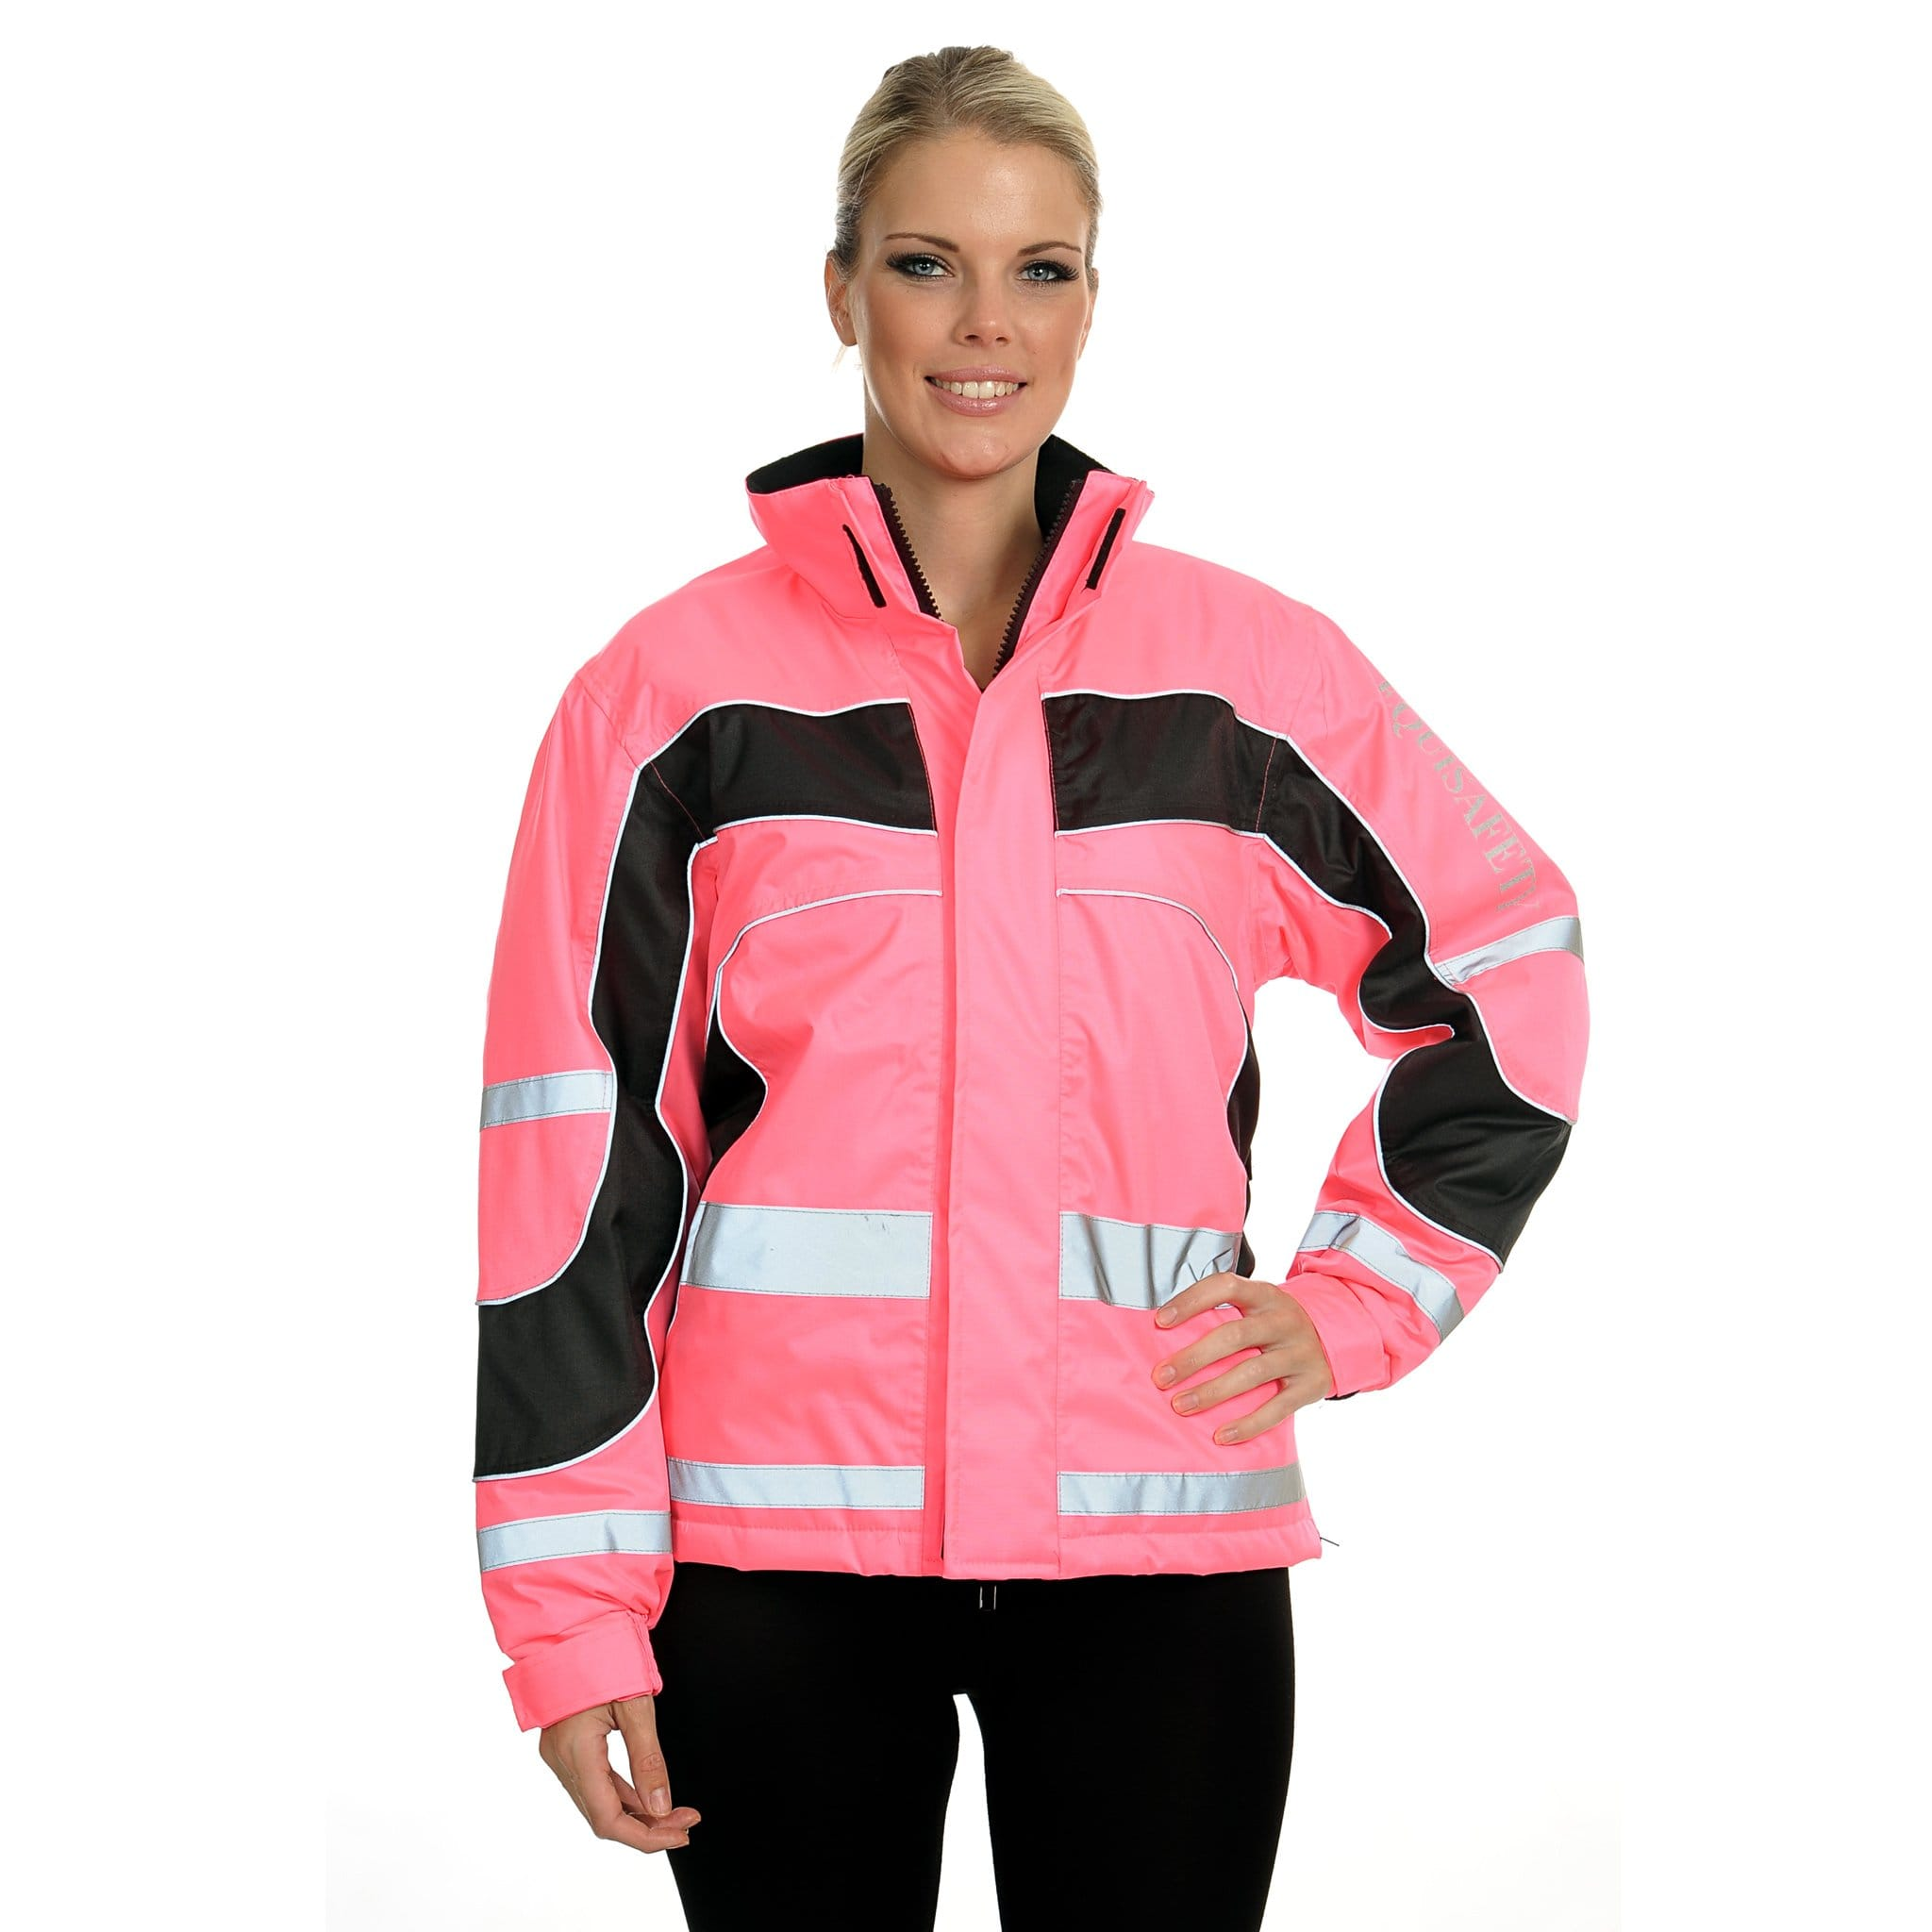 Equisafety Aspey Lightweight Performance Jacket Pink Front View On Model LWJ